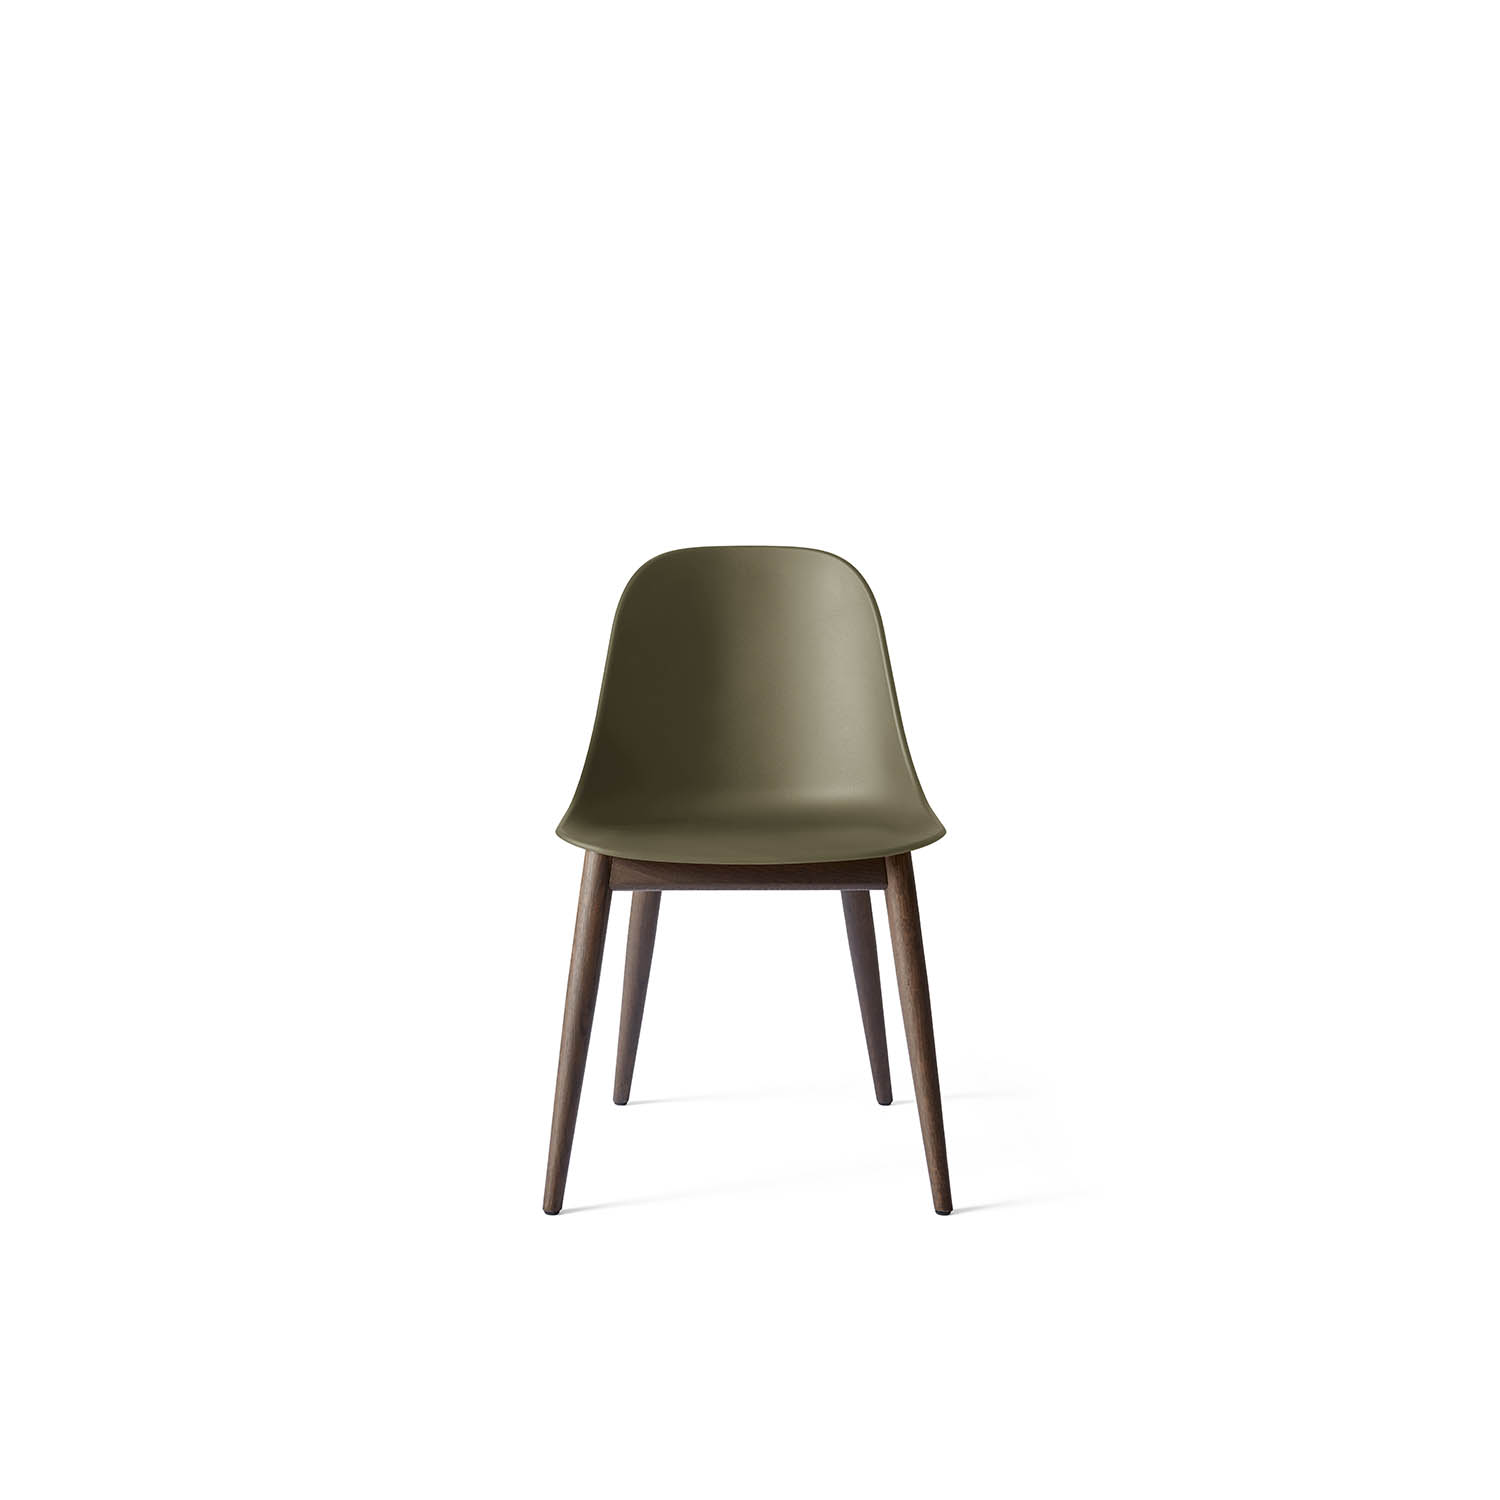 Harbour Side Chair, Dark Stained Oak/Olive Shell